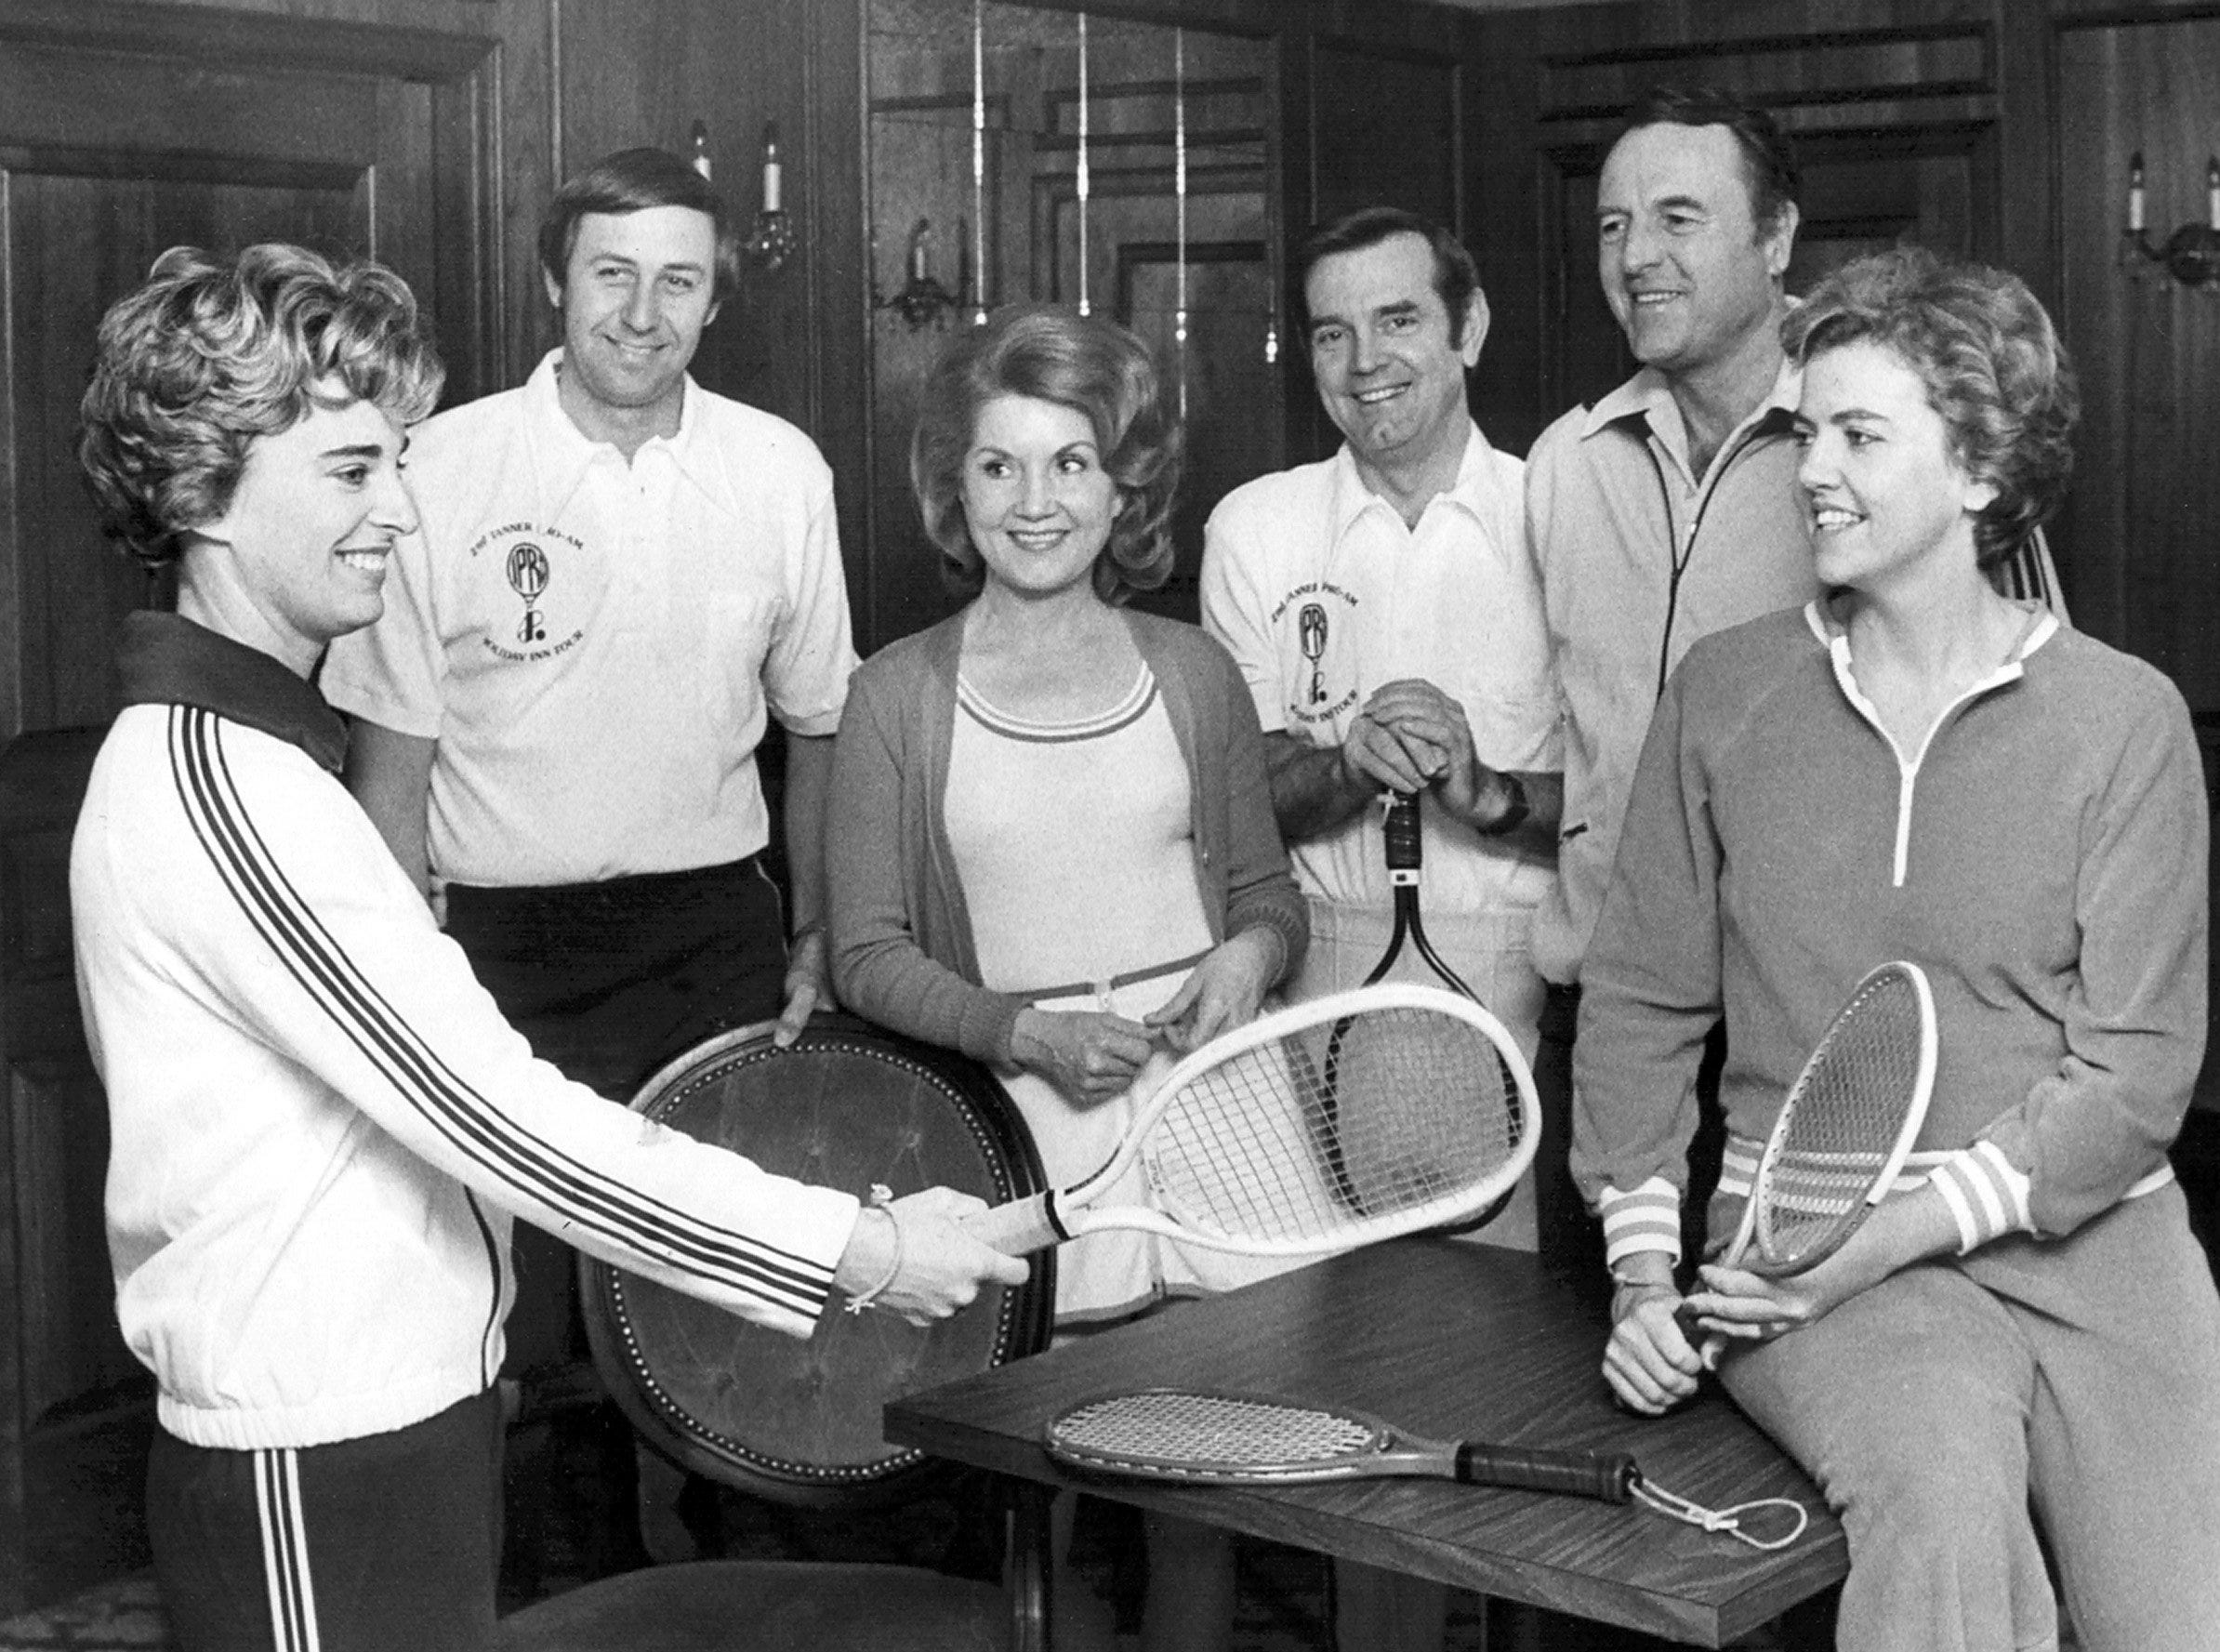 Mr. and Mrs. Don Kessinger (From Left), Mr. and Mrs. William B. Tanner and Mr. and Mrs. DeWitt Shy talk racquetball at the Racquet Club of Memphis on 6 Dec 1975.  They were attending a brunch and the topic of conversation was the upcoming William B. Tanner Pro-Am Racquetball championship.